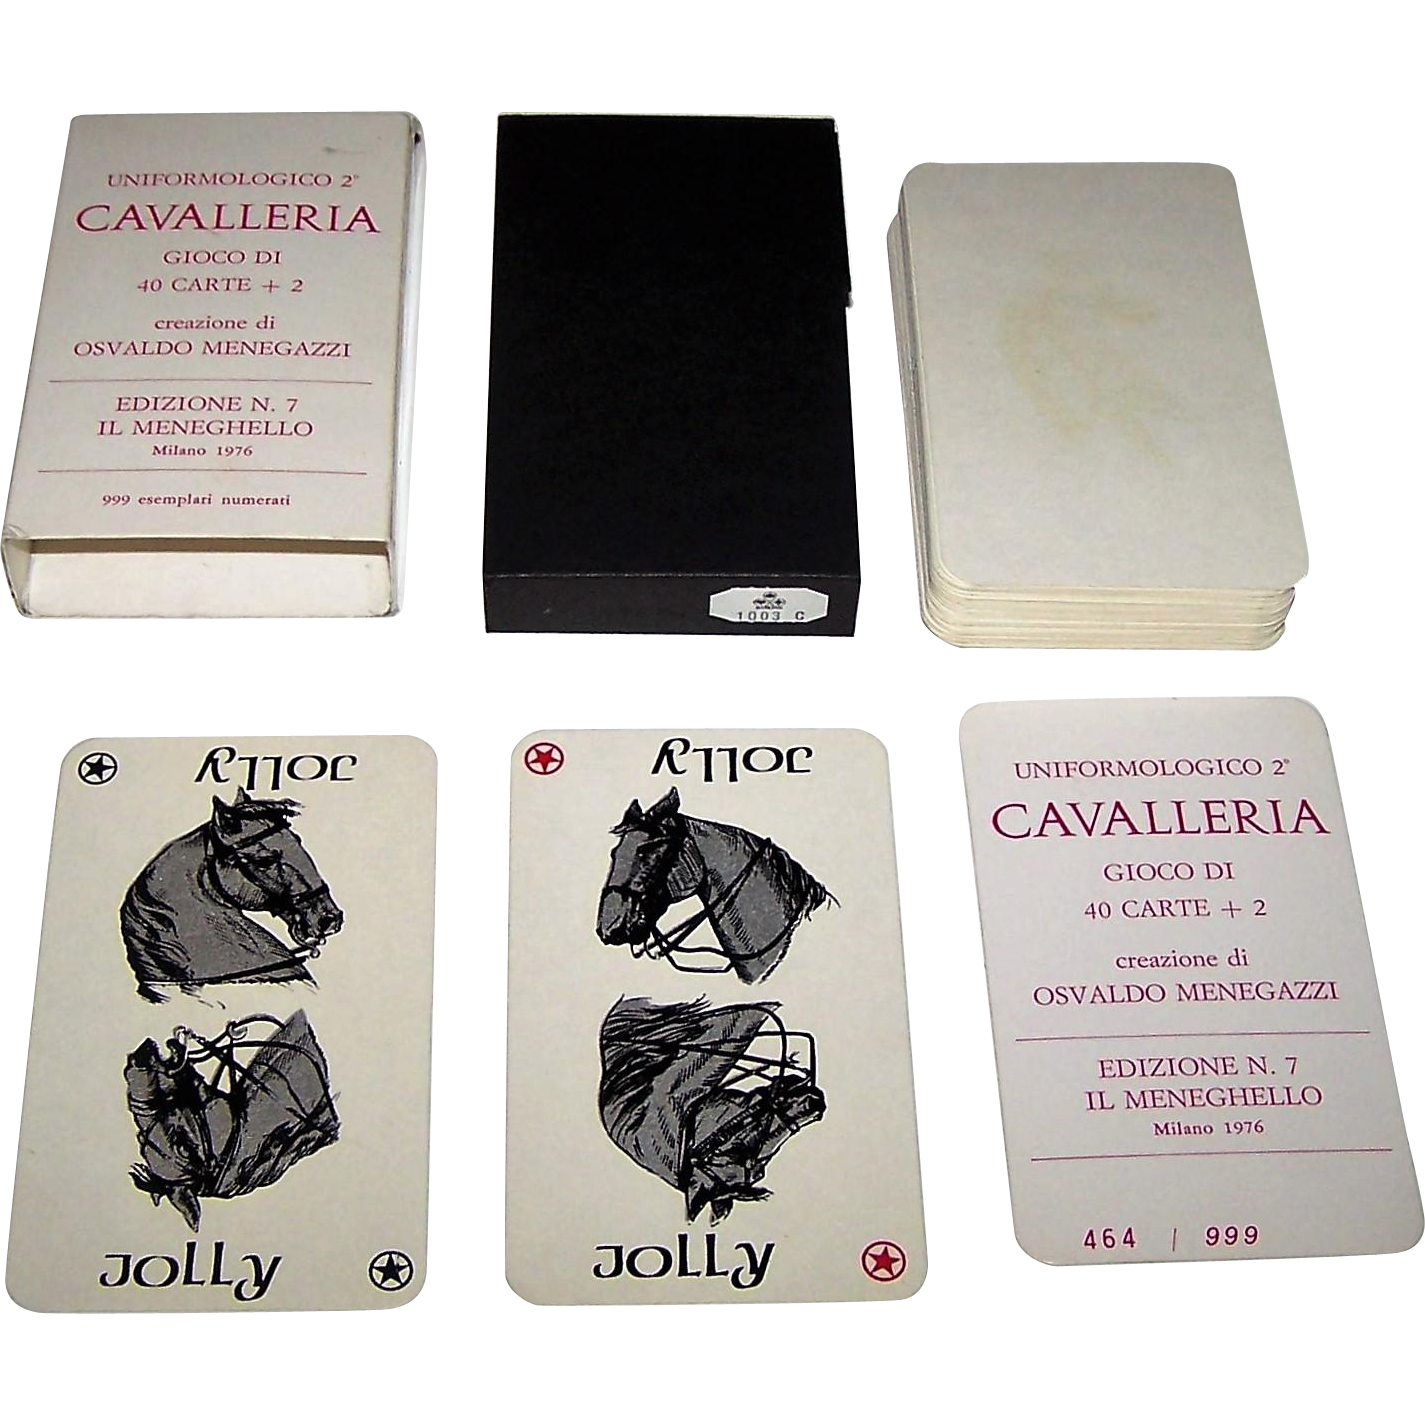 "Il Meneghello ""Uniformologico 2 Cavalleria"" Playing Cards, Osvaldo Menegazzi Designs, Ltd. Ed. (464/999), c.1976"